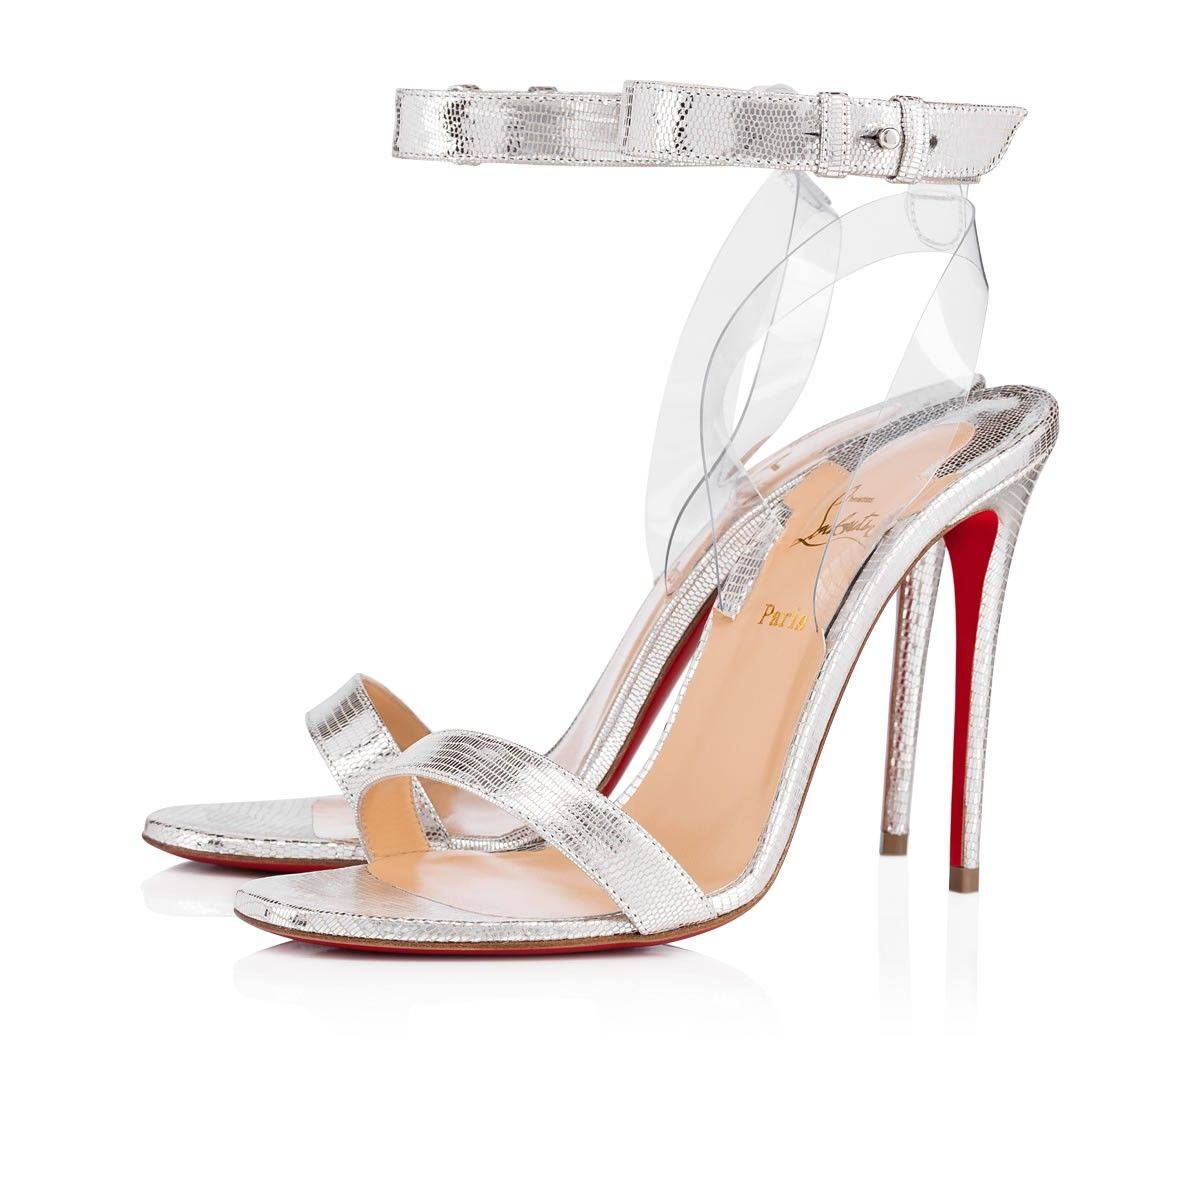 Jonatina Embodies Minimalist Elegance A Transparent Pvc Heel Feature Creates The Estilo De Zapatos Zapatos Christian Louboutin Zapatos Sandalias